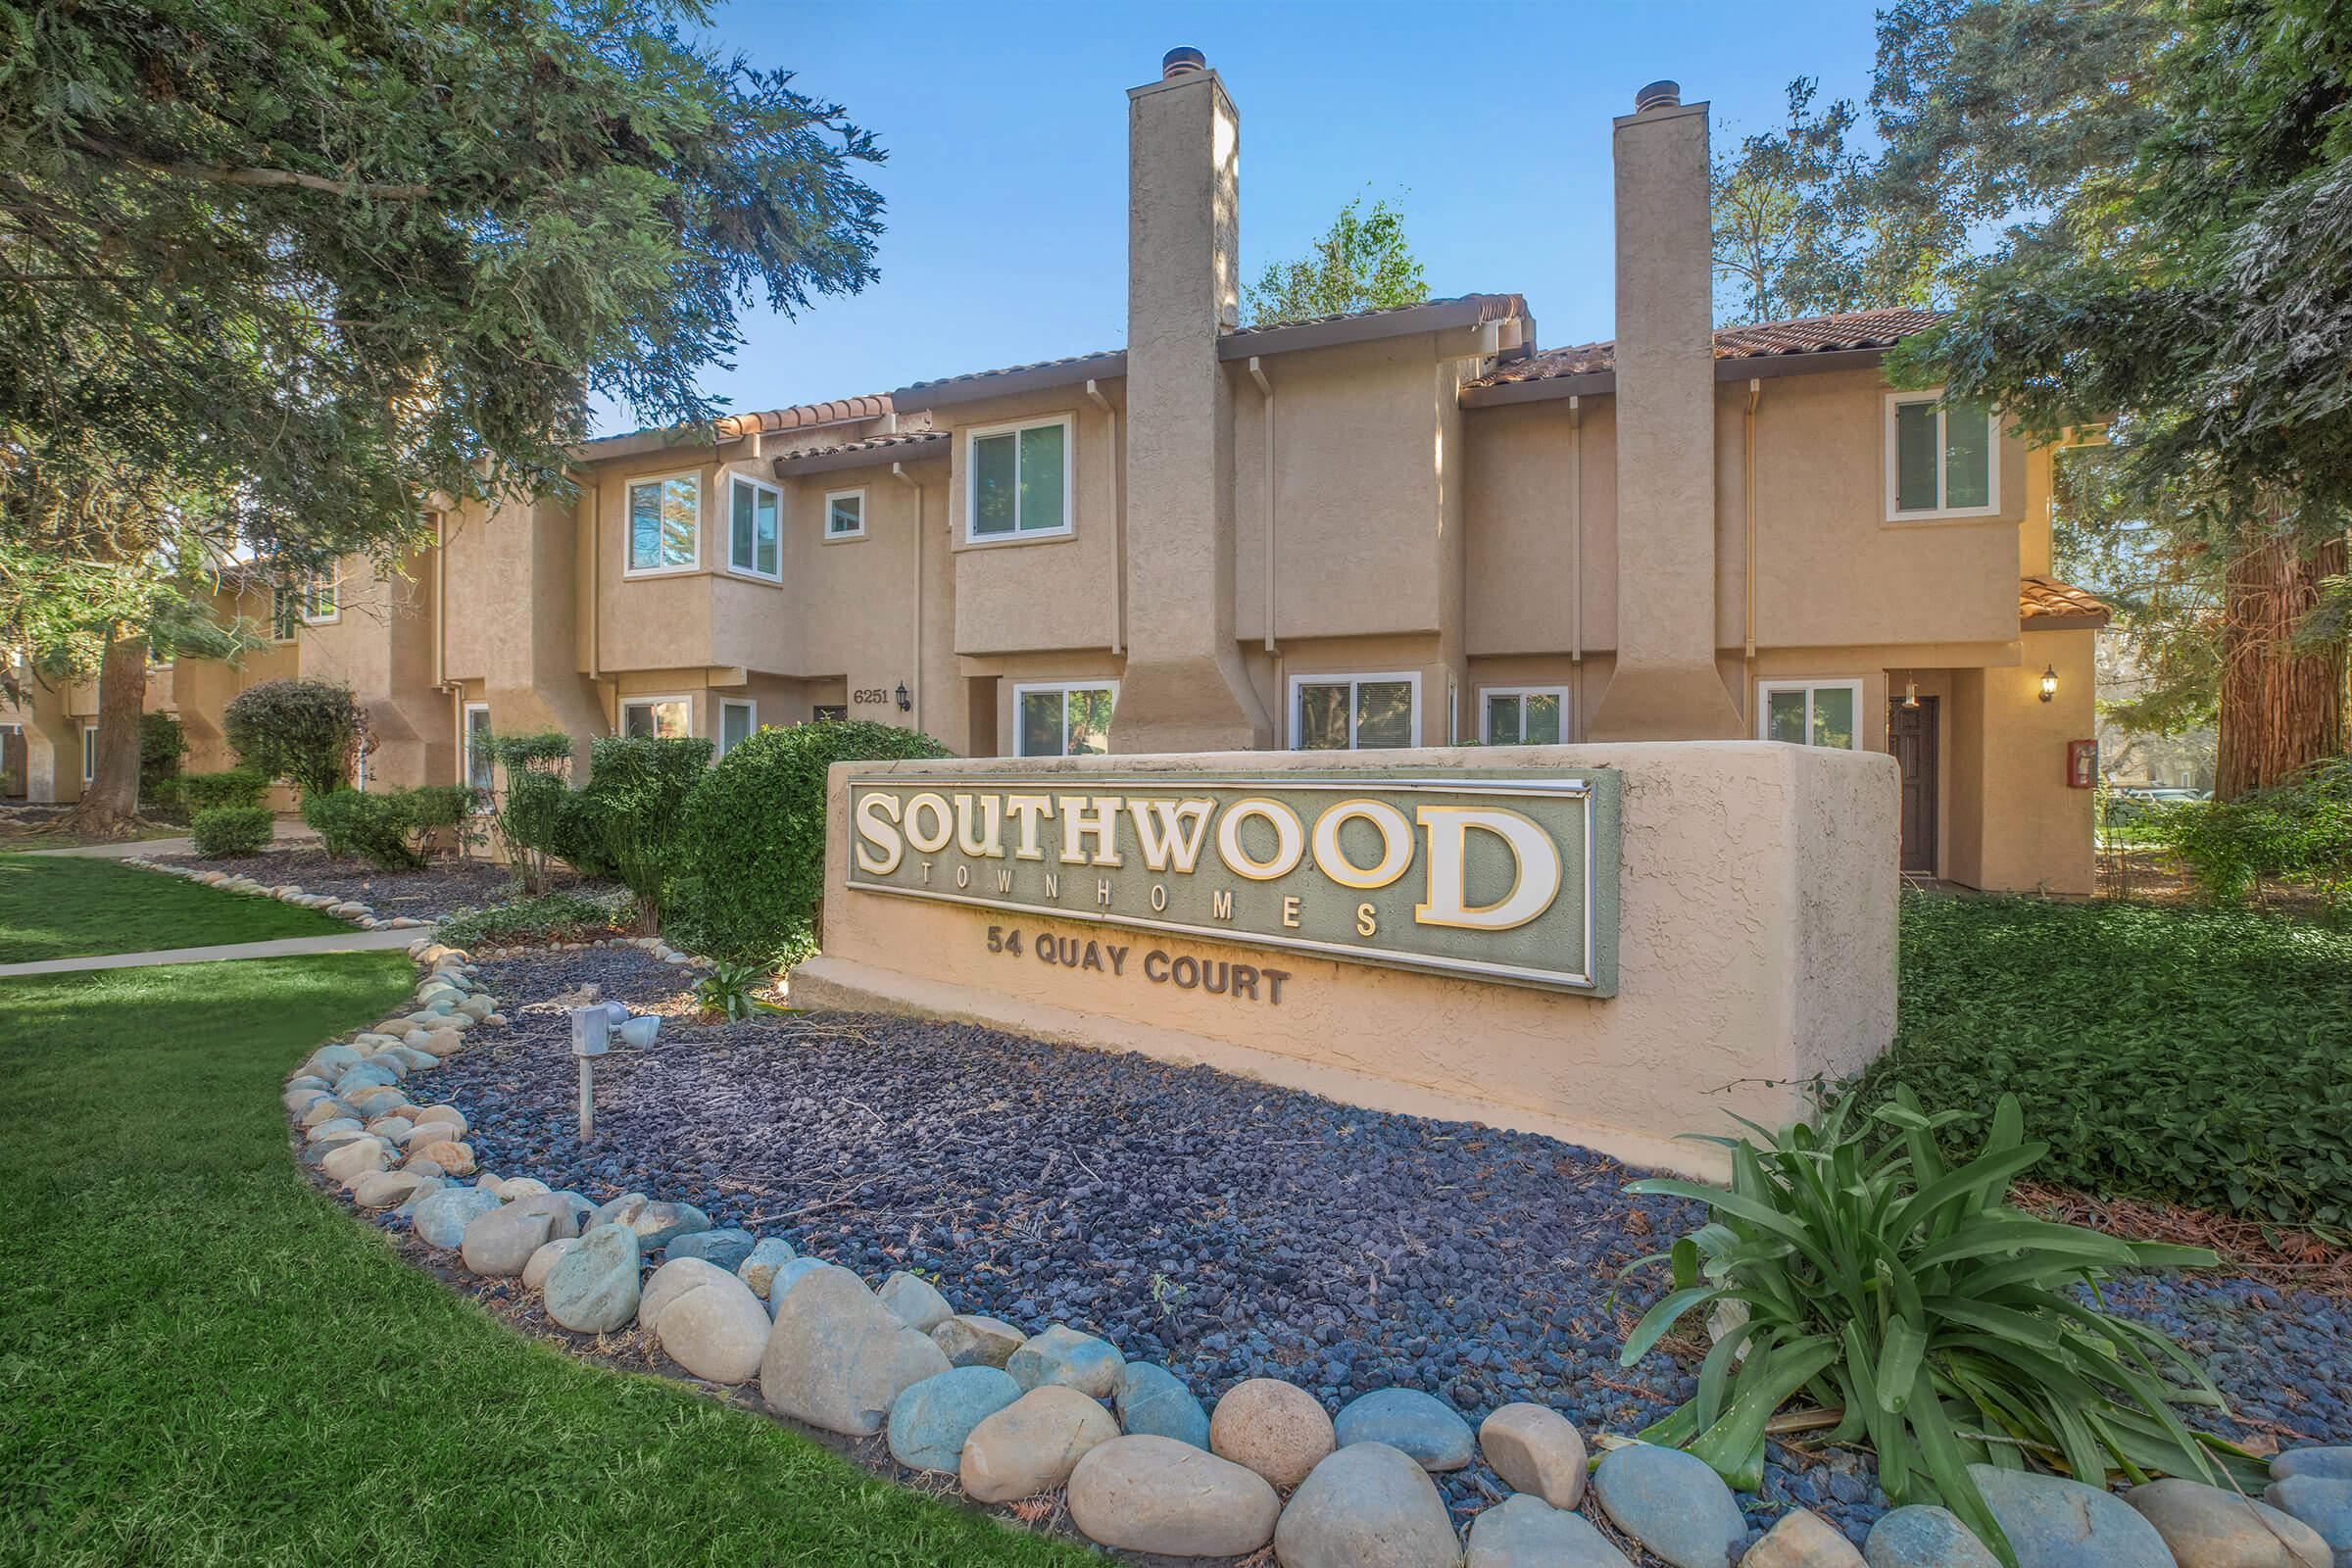 Landscaping at Southwood Townhome in Sacramento CA